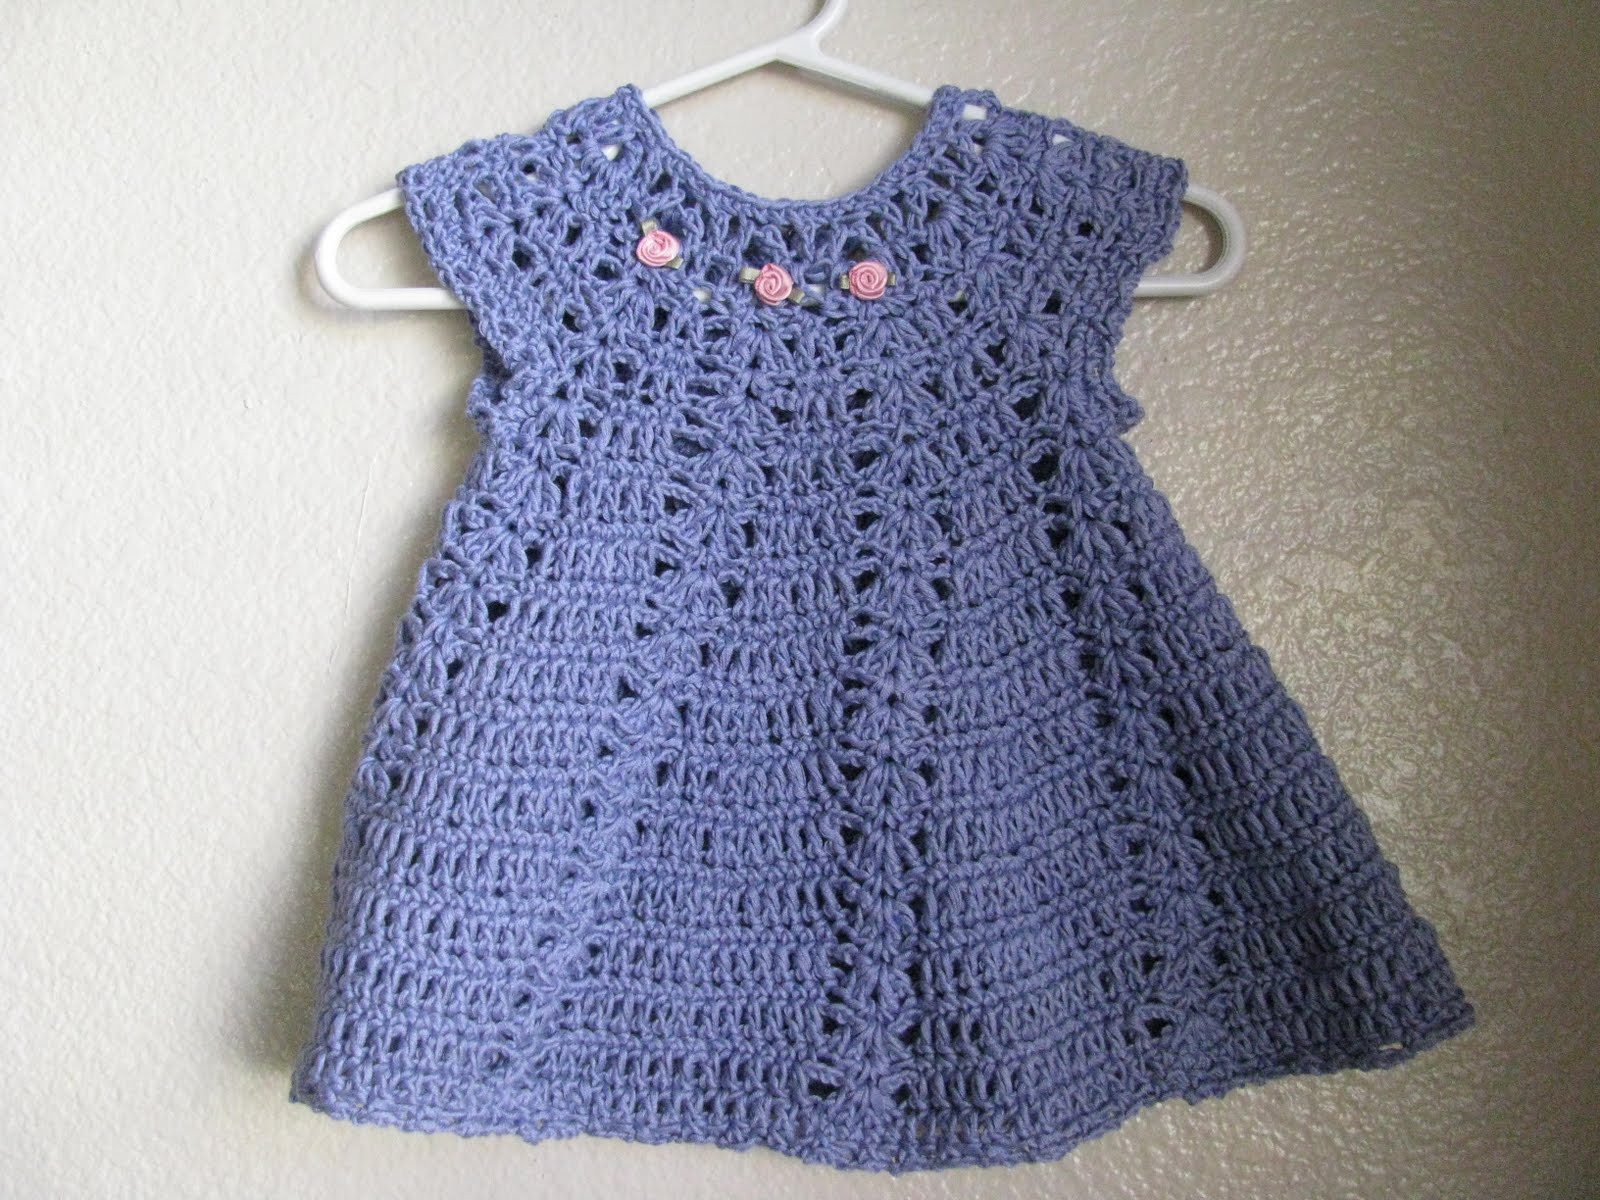 Elegant My Latest Project My First Crocheted Baby Dress Finished Crochet Baby Clothes Patterns Of Amazing 44 Pictures Crochet Baby Clothes Patterns